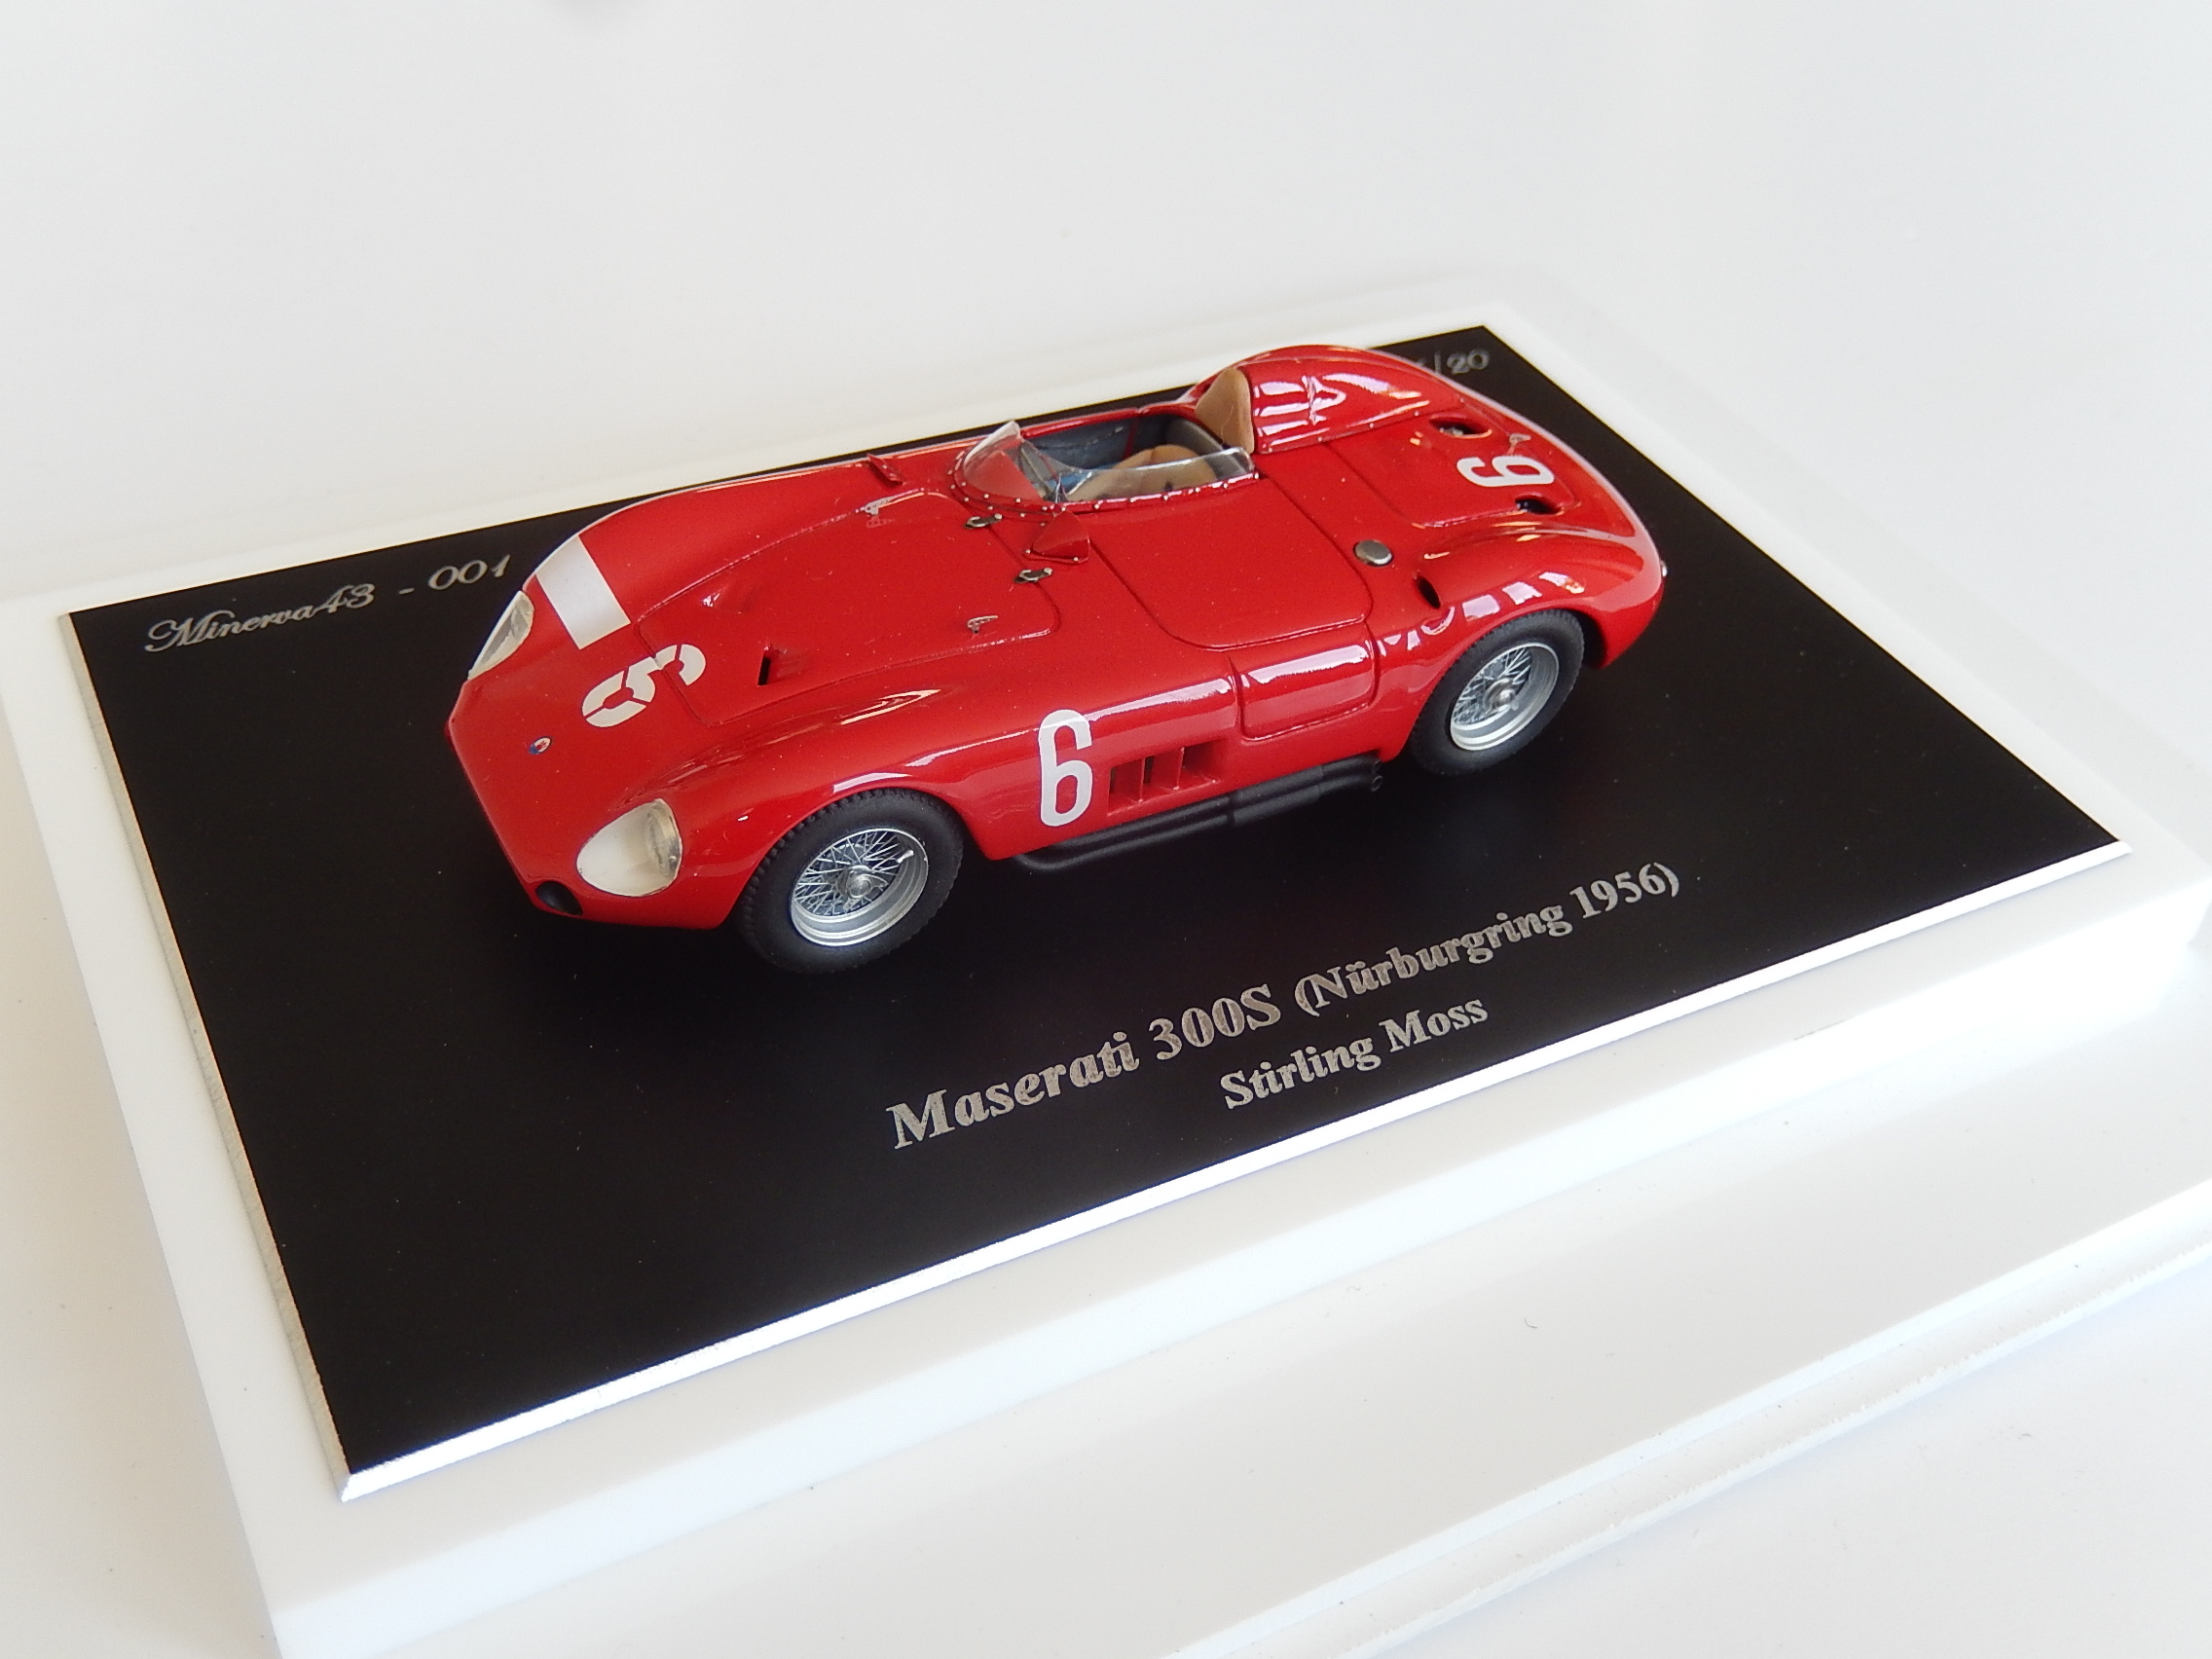 F. Suber : Maserati 300 S Nurburgring 1956 with S.Moss